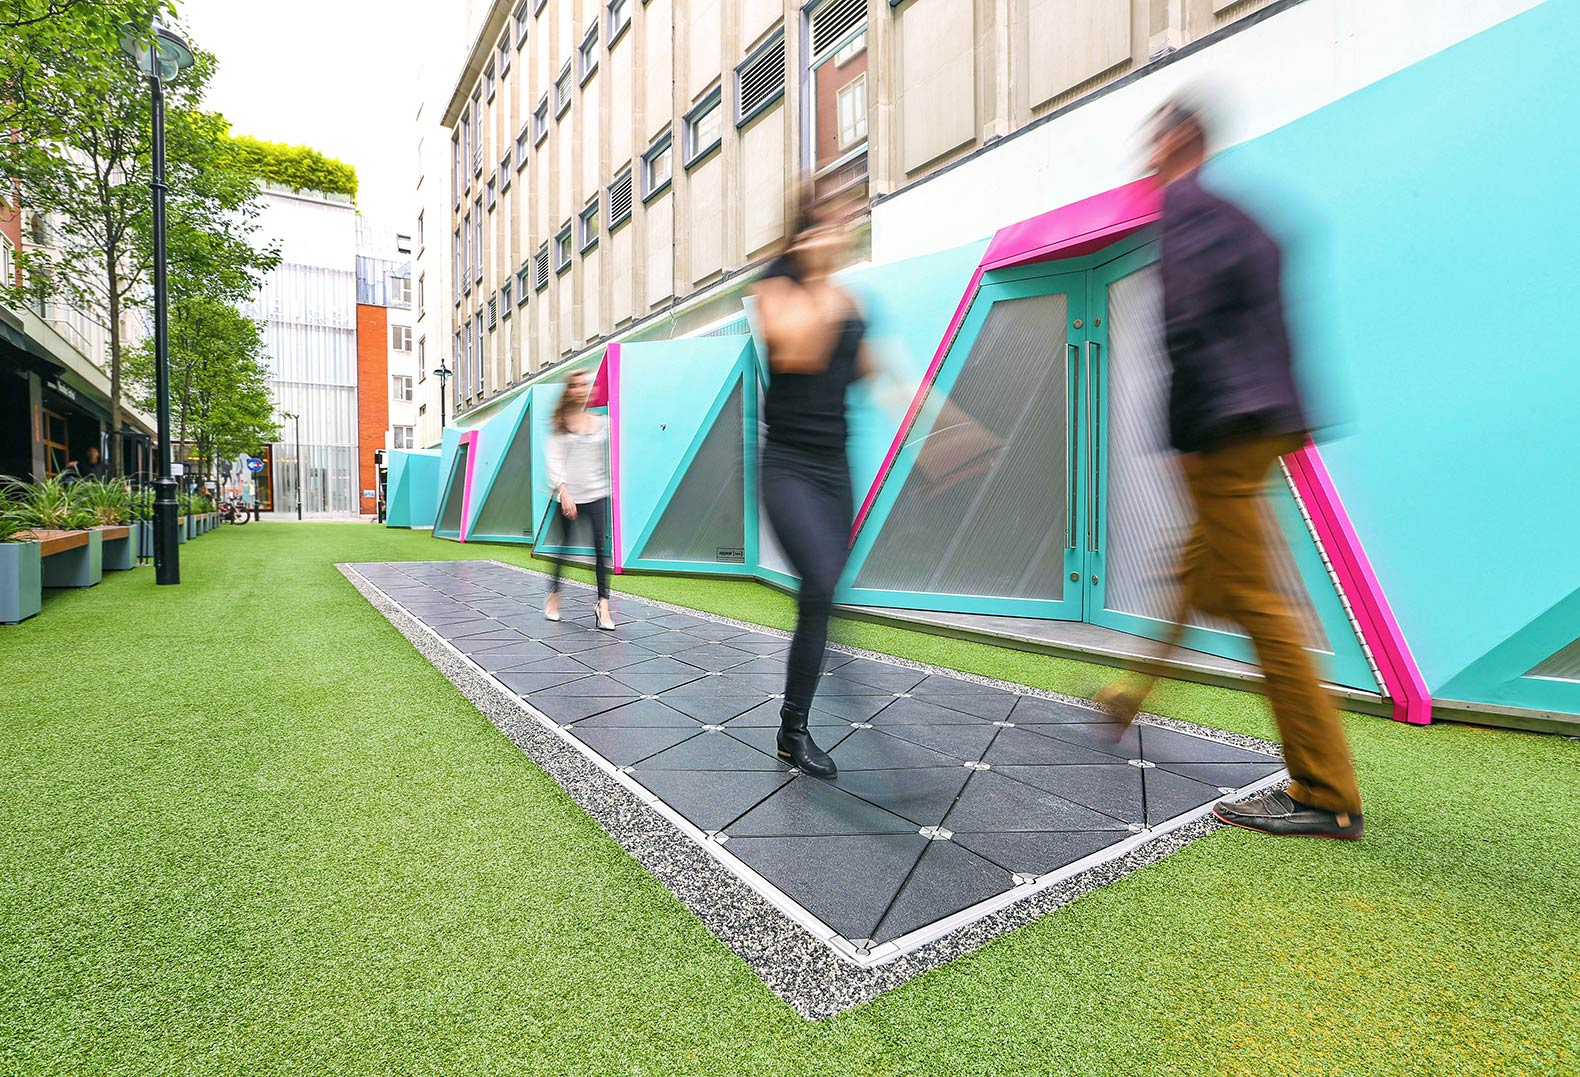 Pavegen unveils world's first energy-harvesting smart street in London